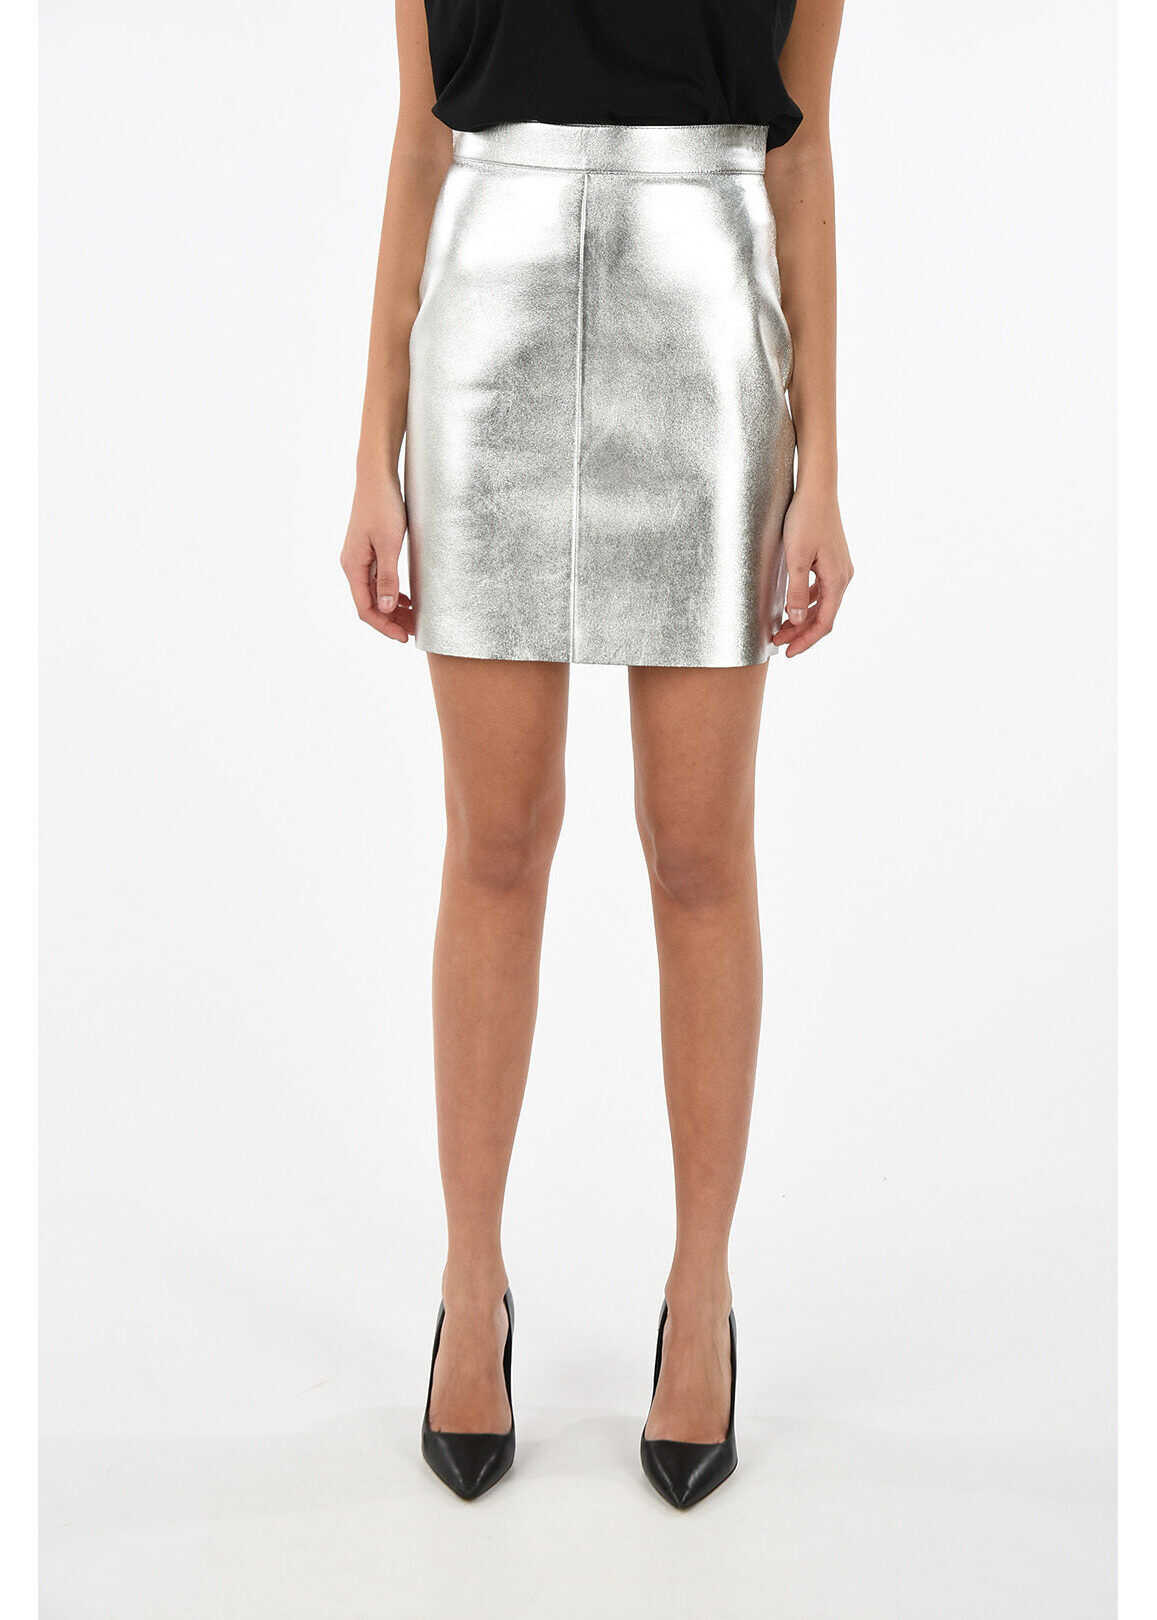 Céline back-zip fastening leather pencil skirt SILVER